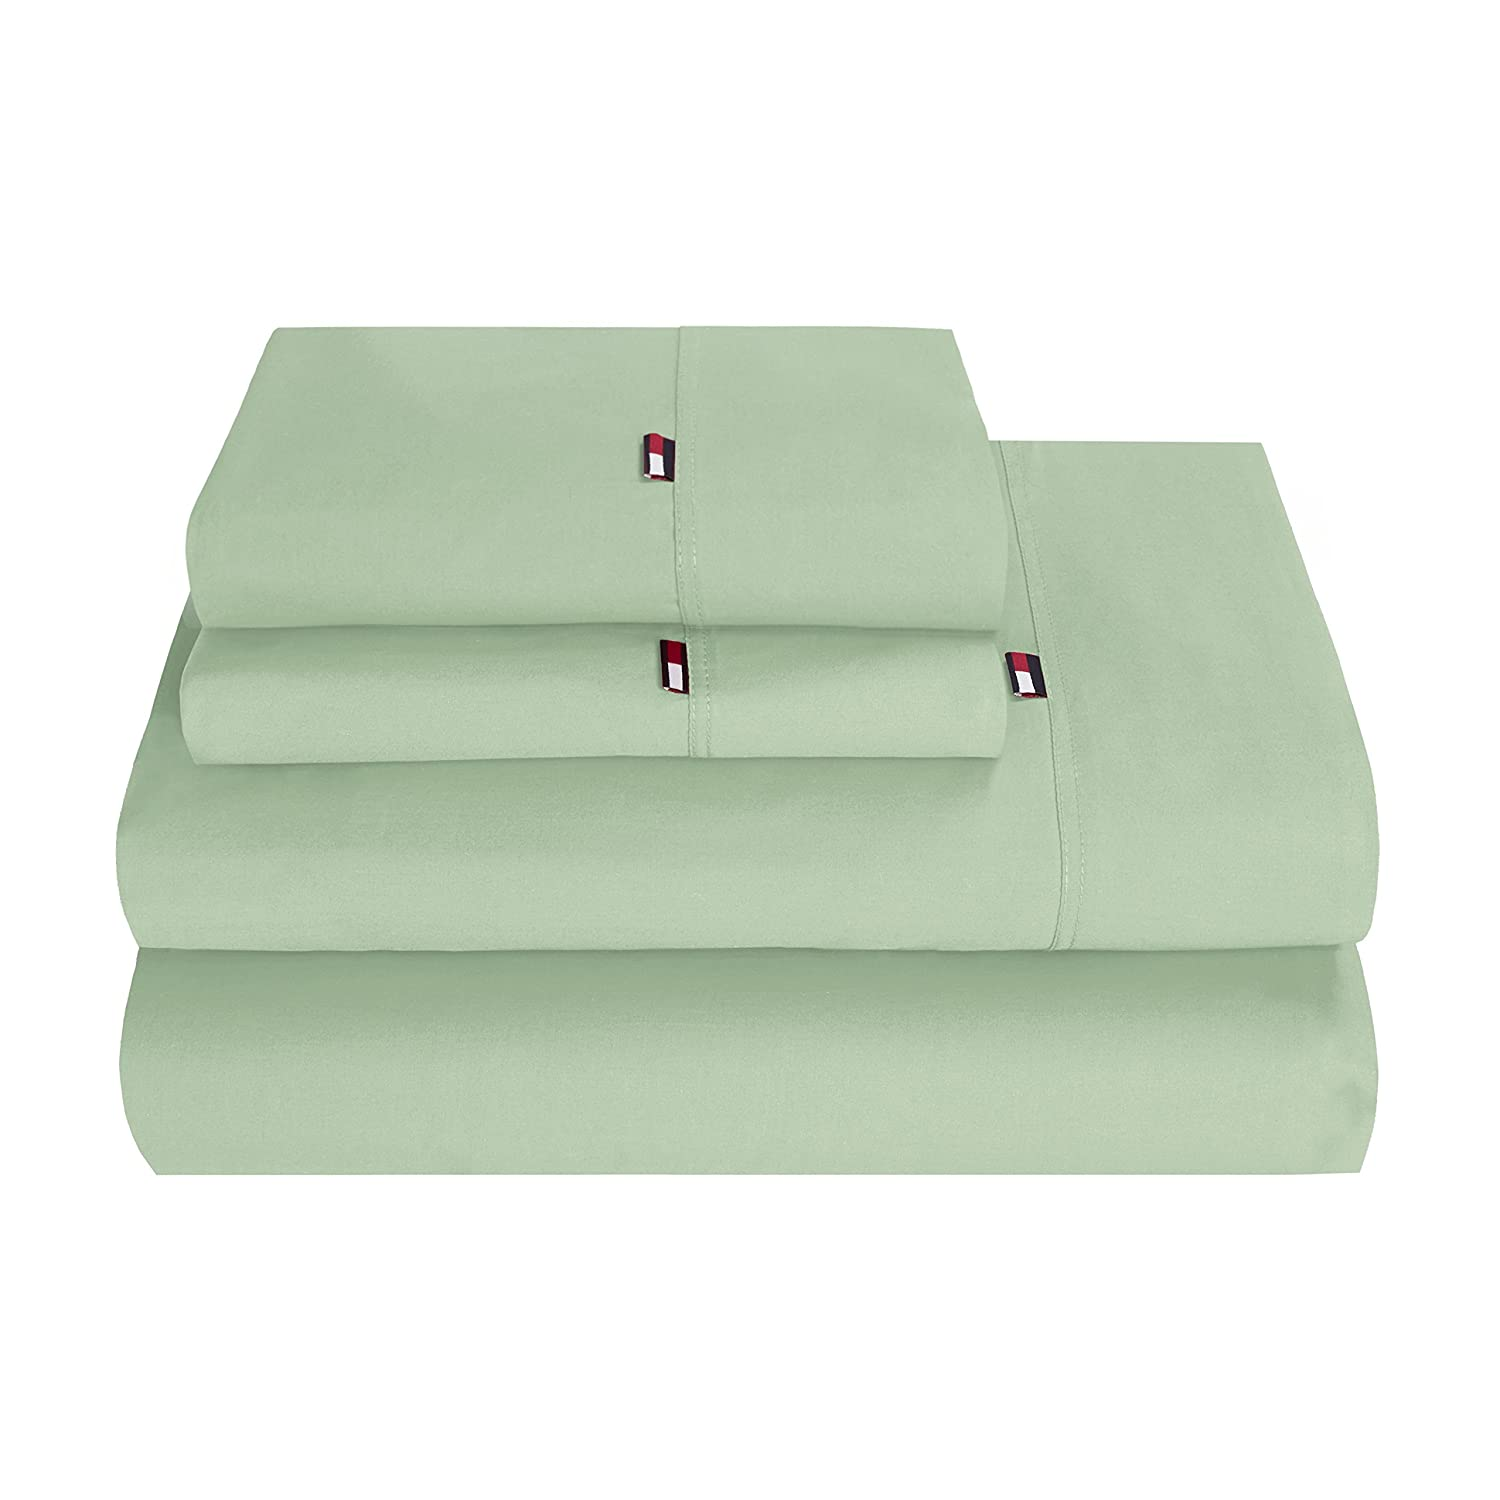 Tommy Hilfiger Th Signature Seagrass F Sheet Set Full